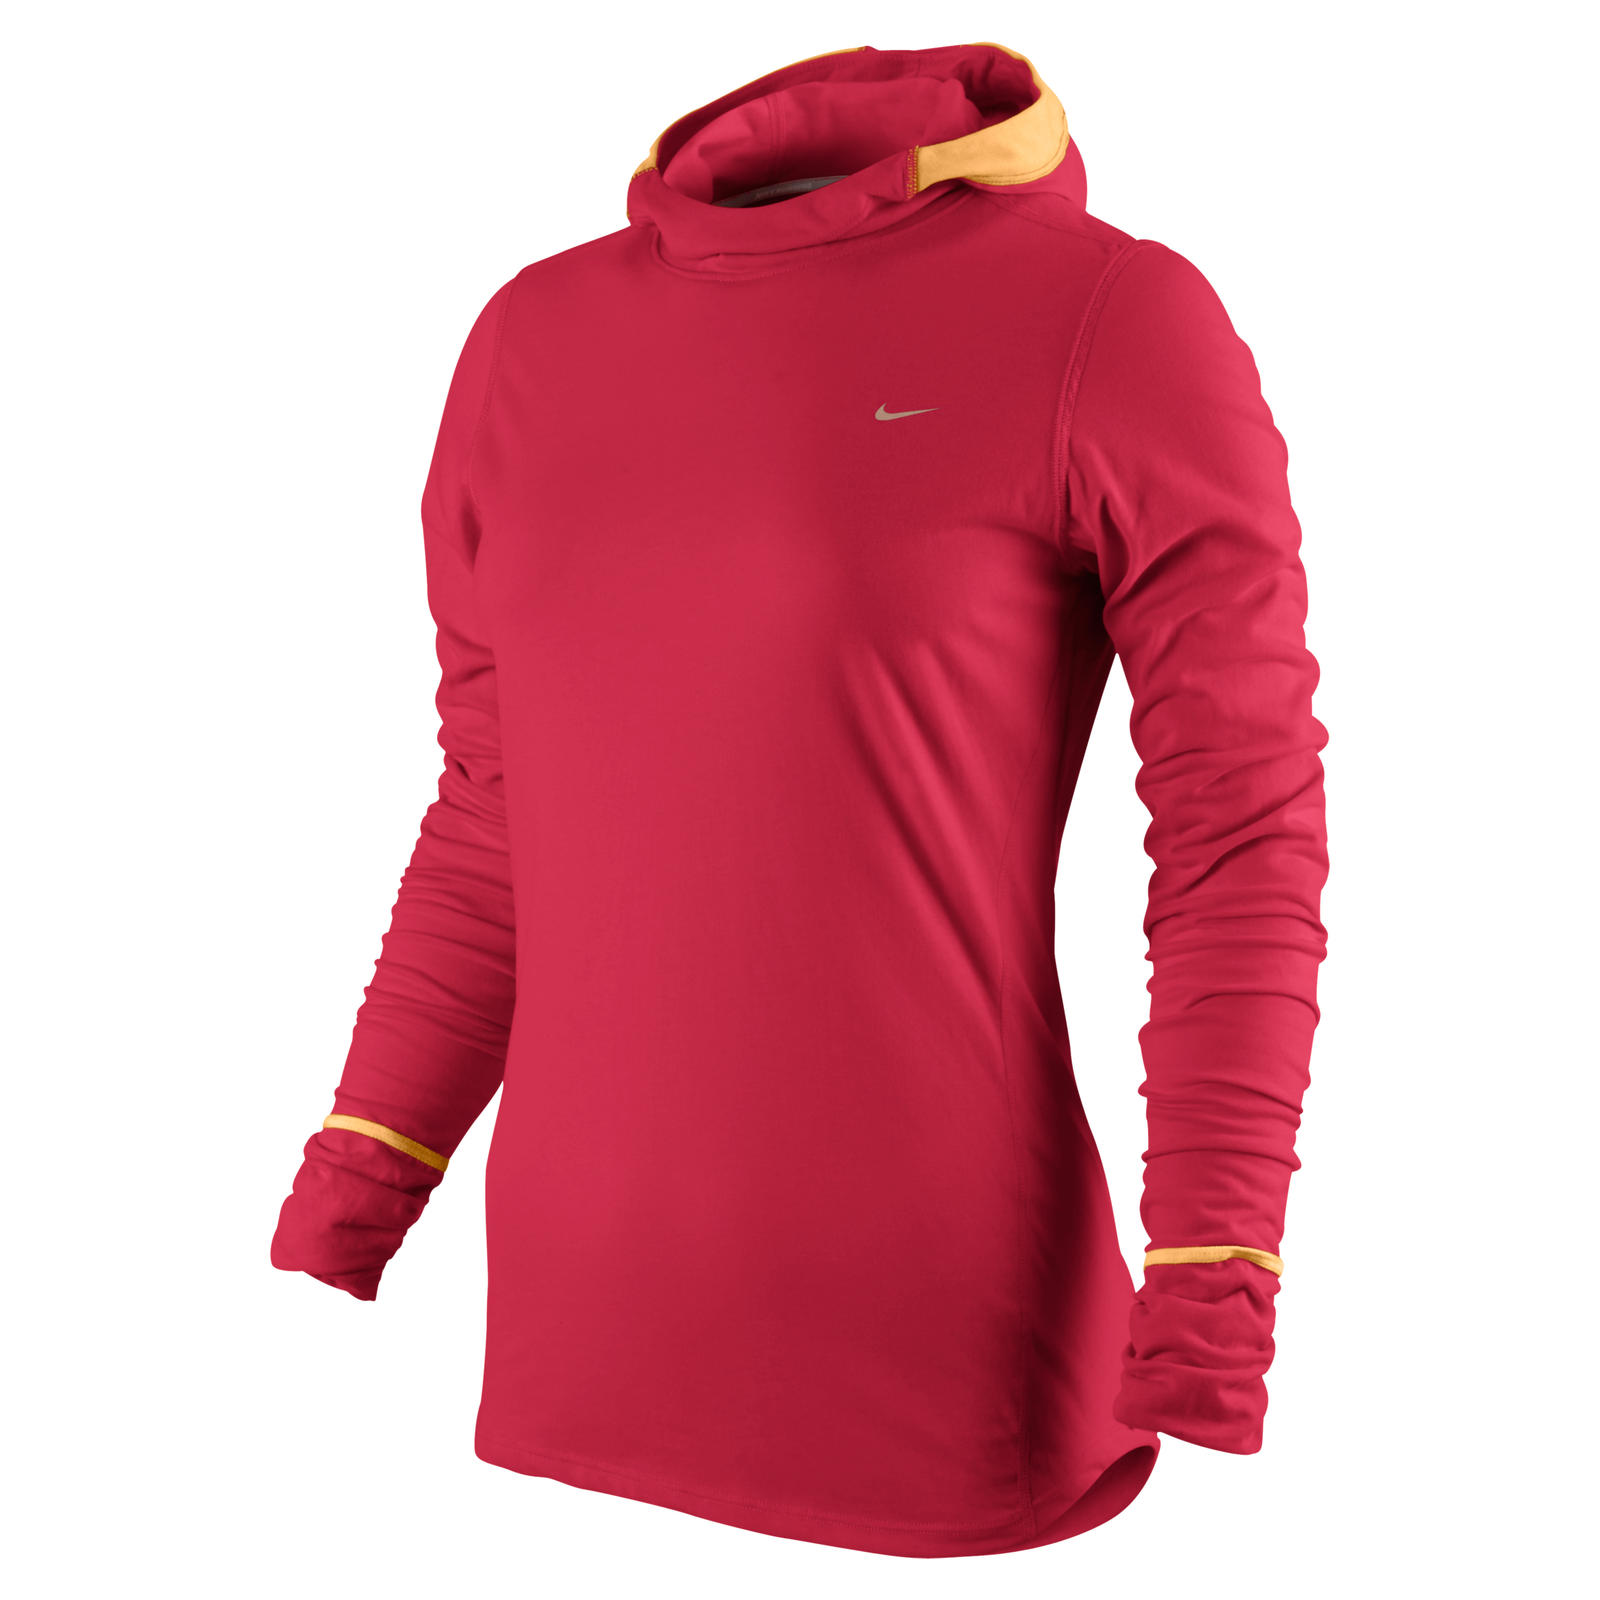 nike running 2013 s apparel collection